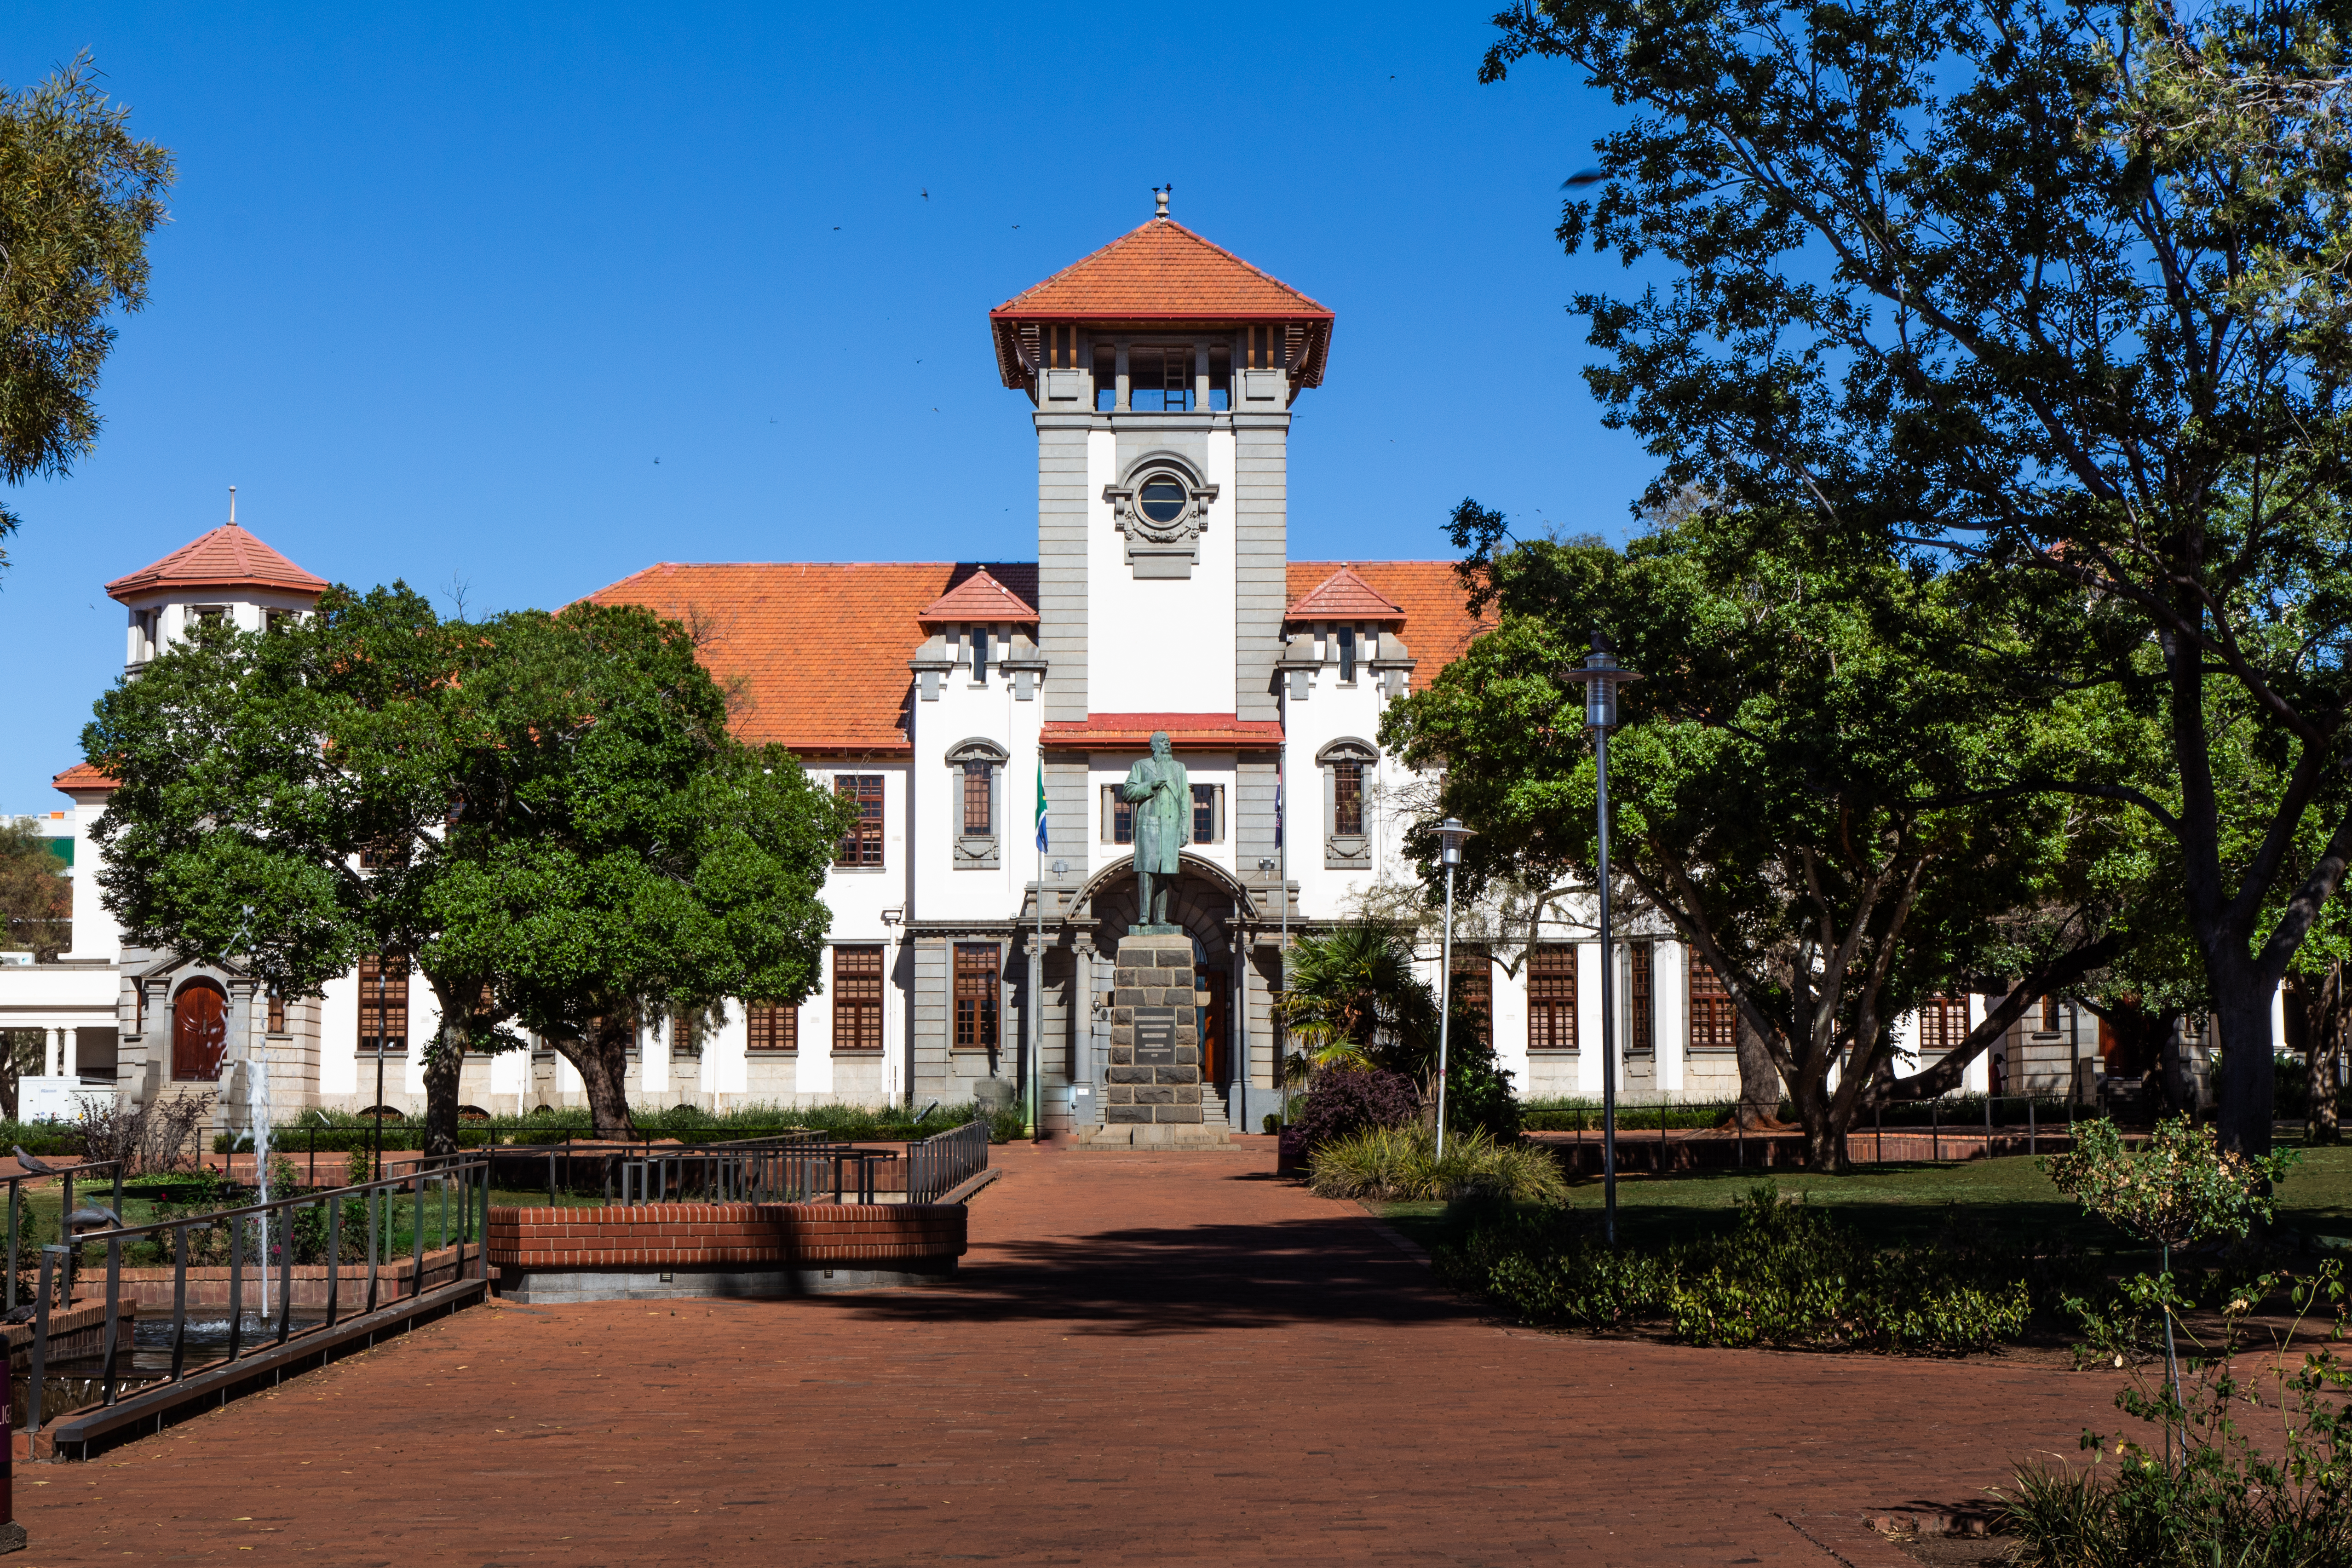 MT Steyn - Main Building and Statue